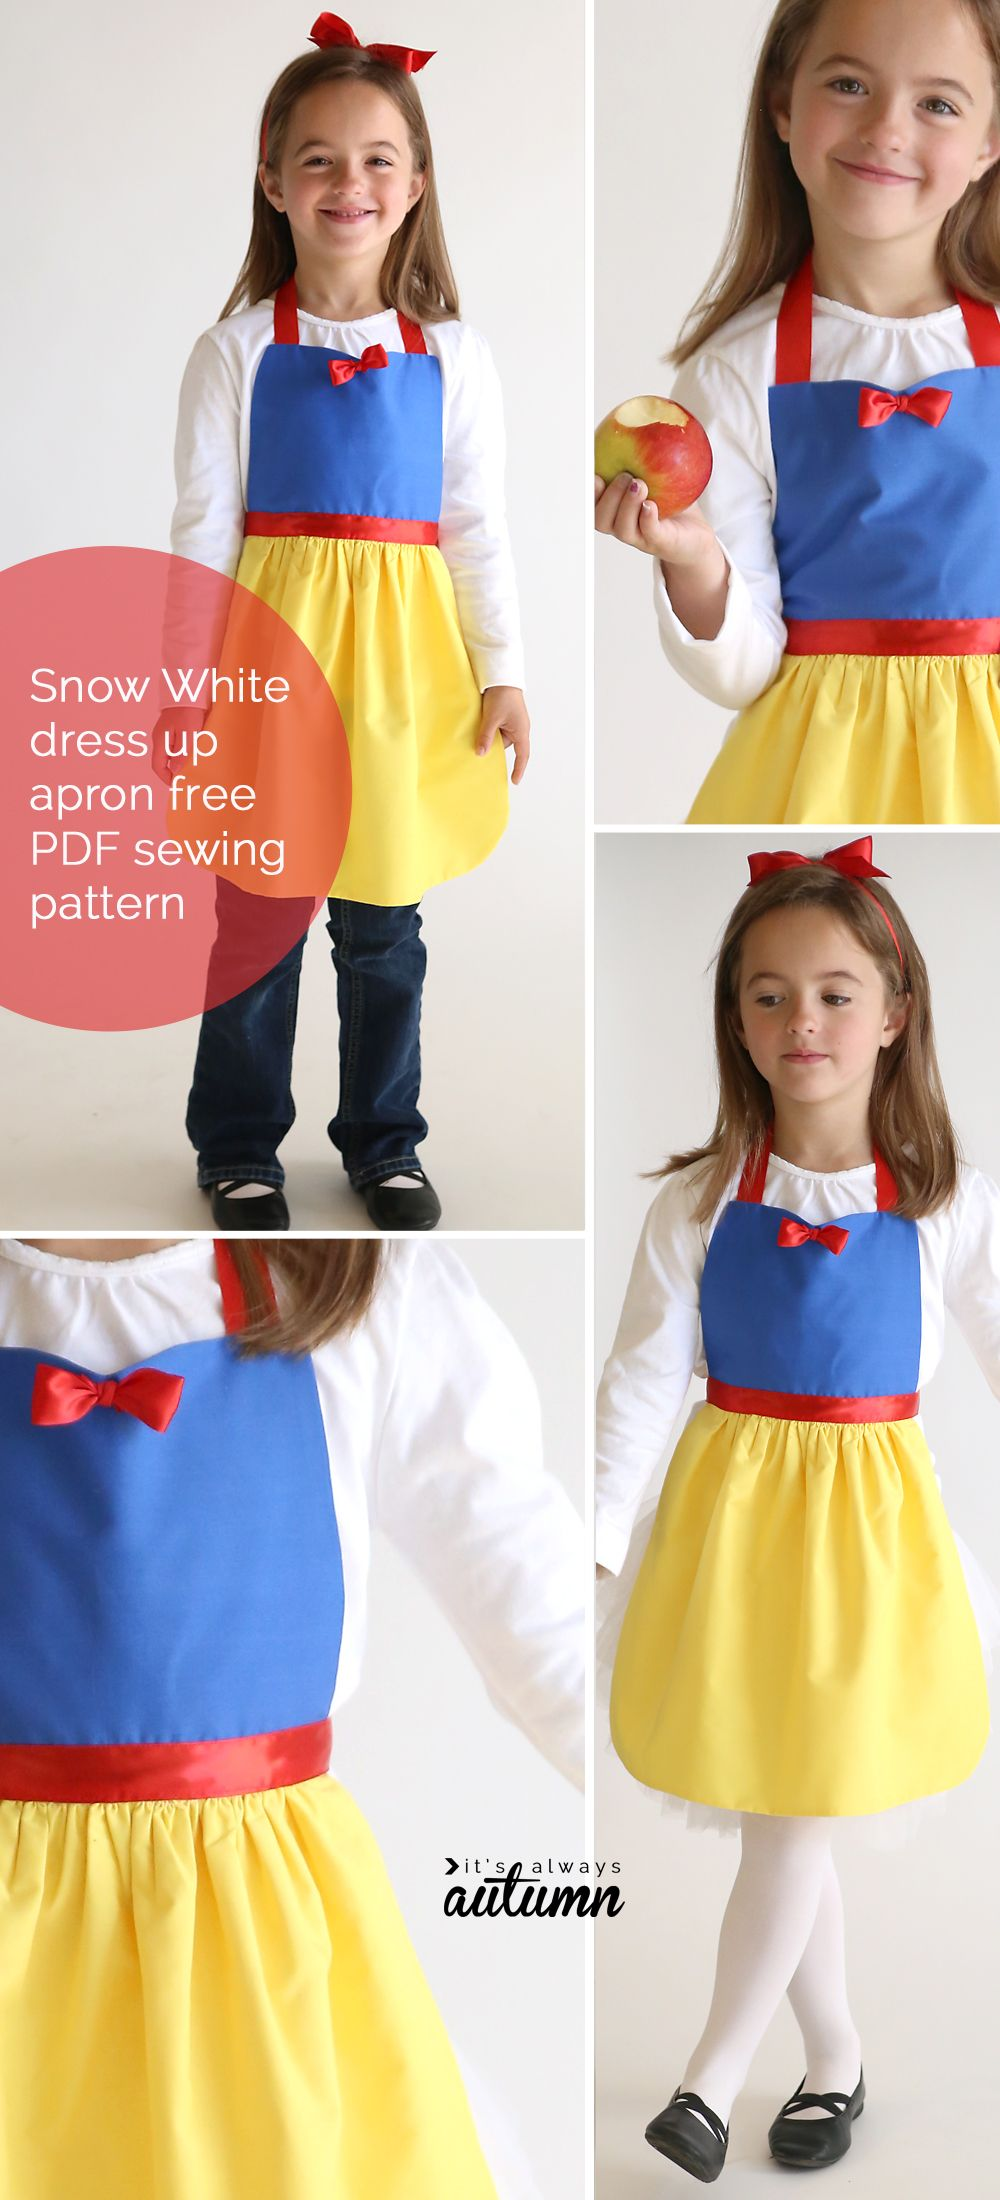 free sewing pattern for Snow White princess dress up apron